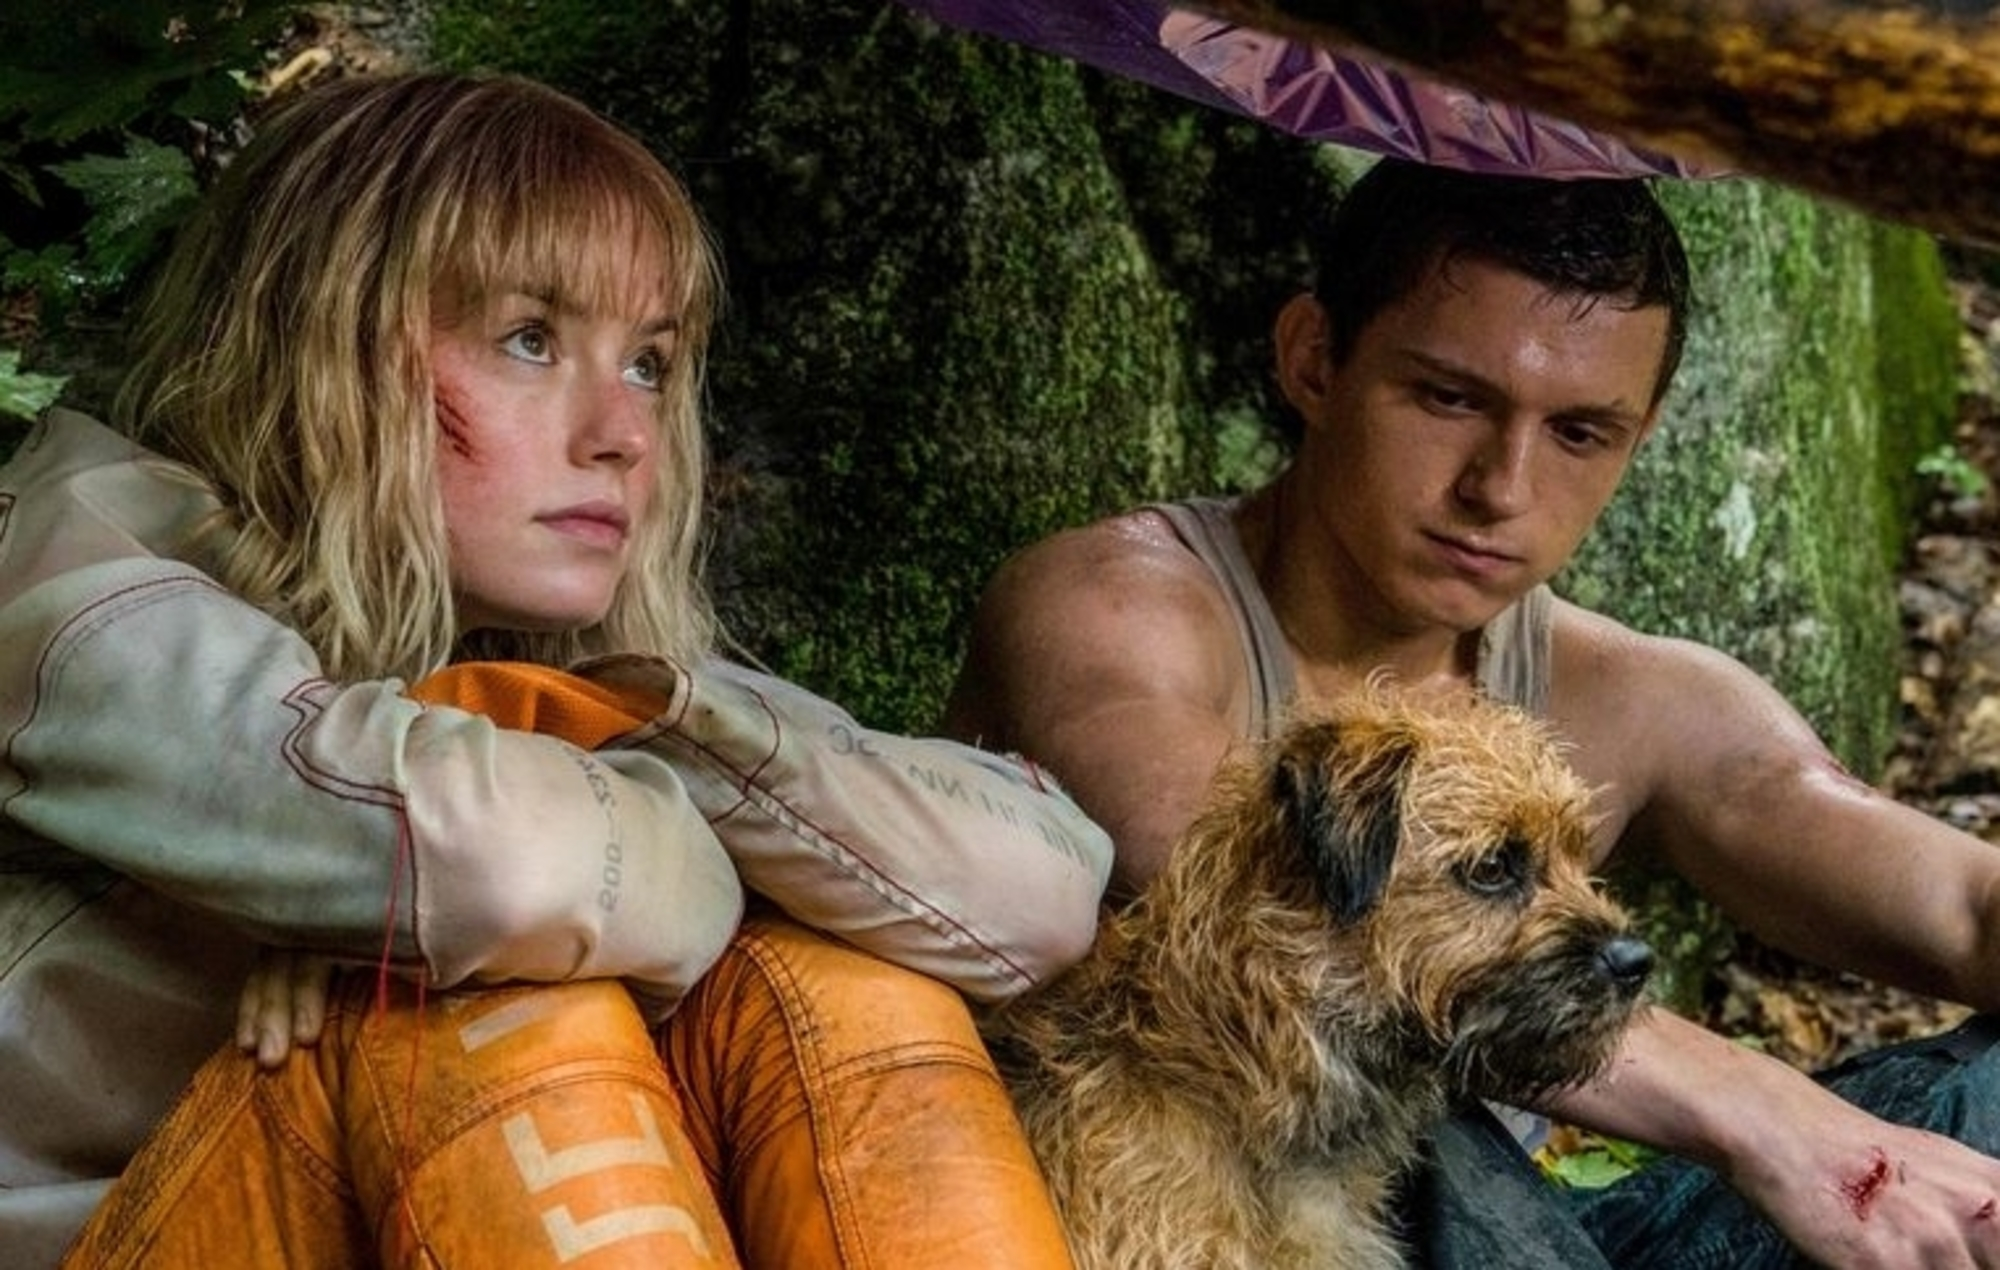 Tom Holland and Daisy Ridley's 'Chaos Walking' gets UK streaming release